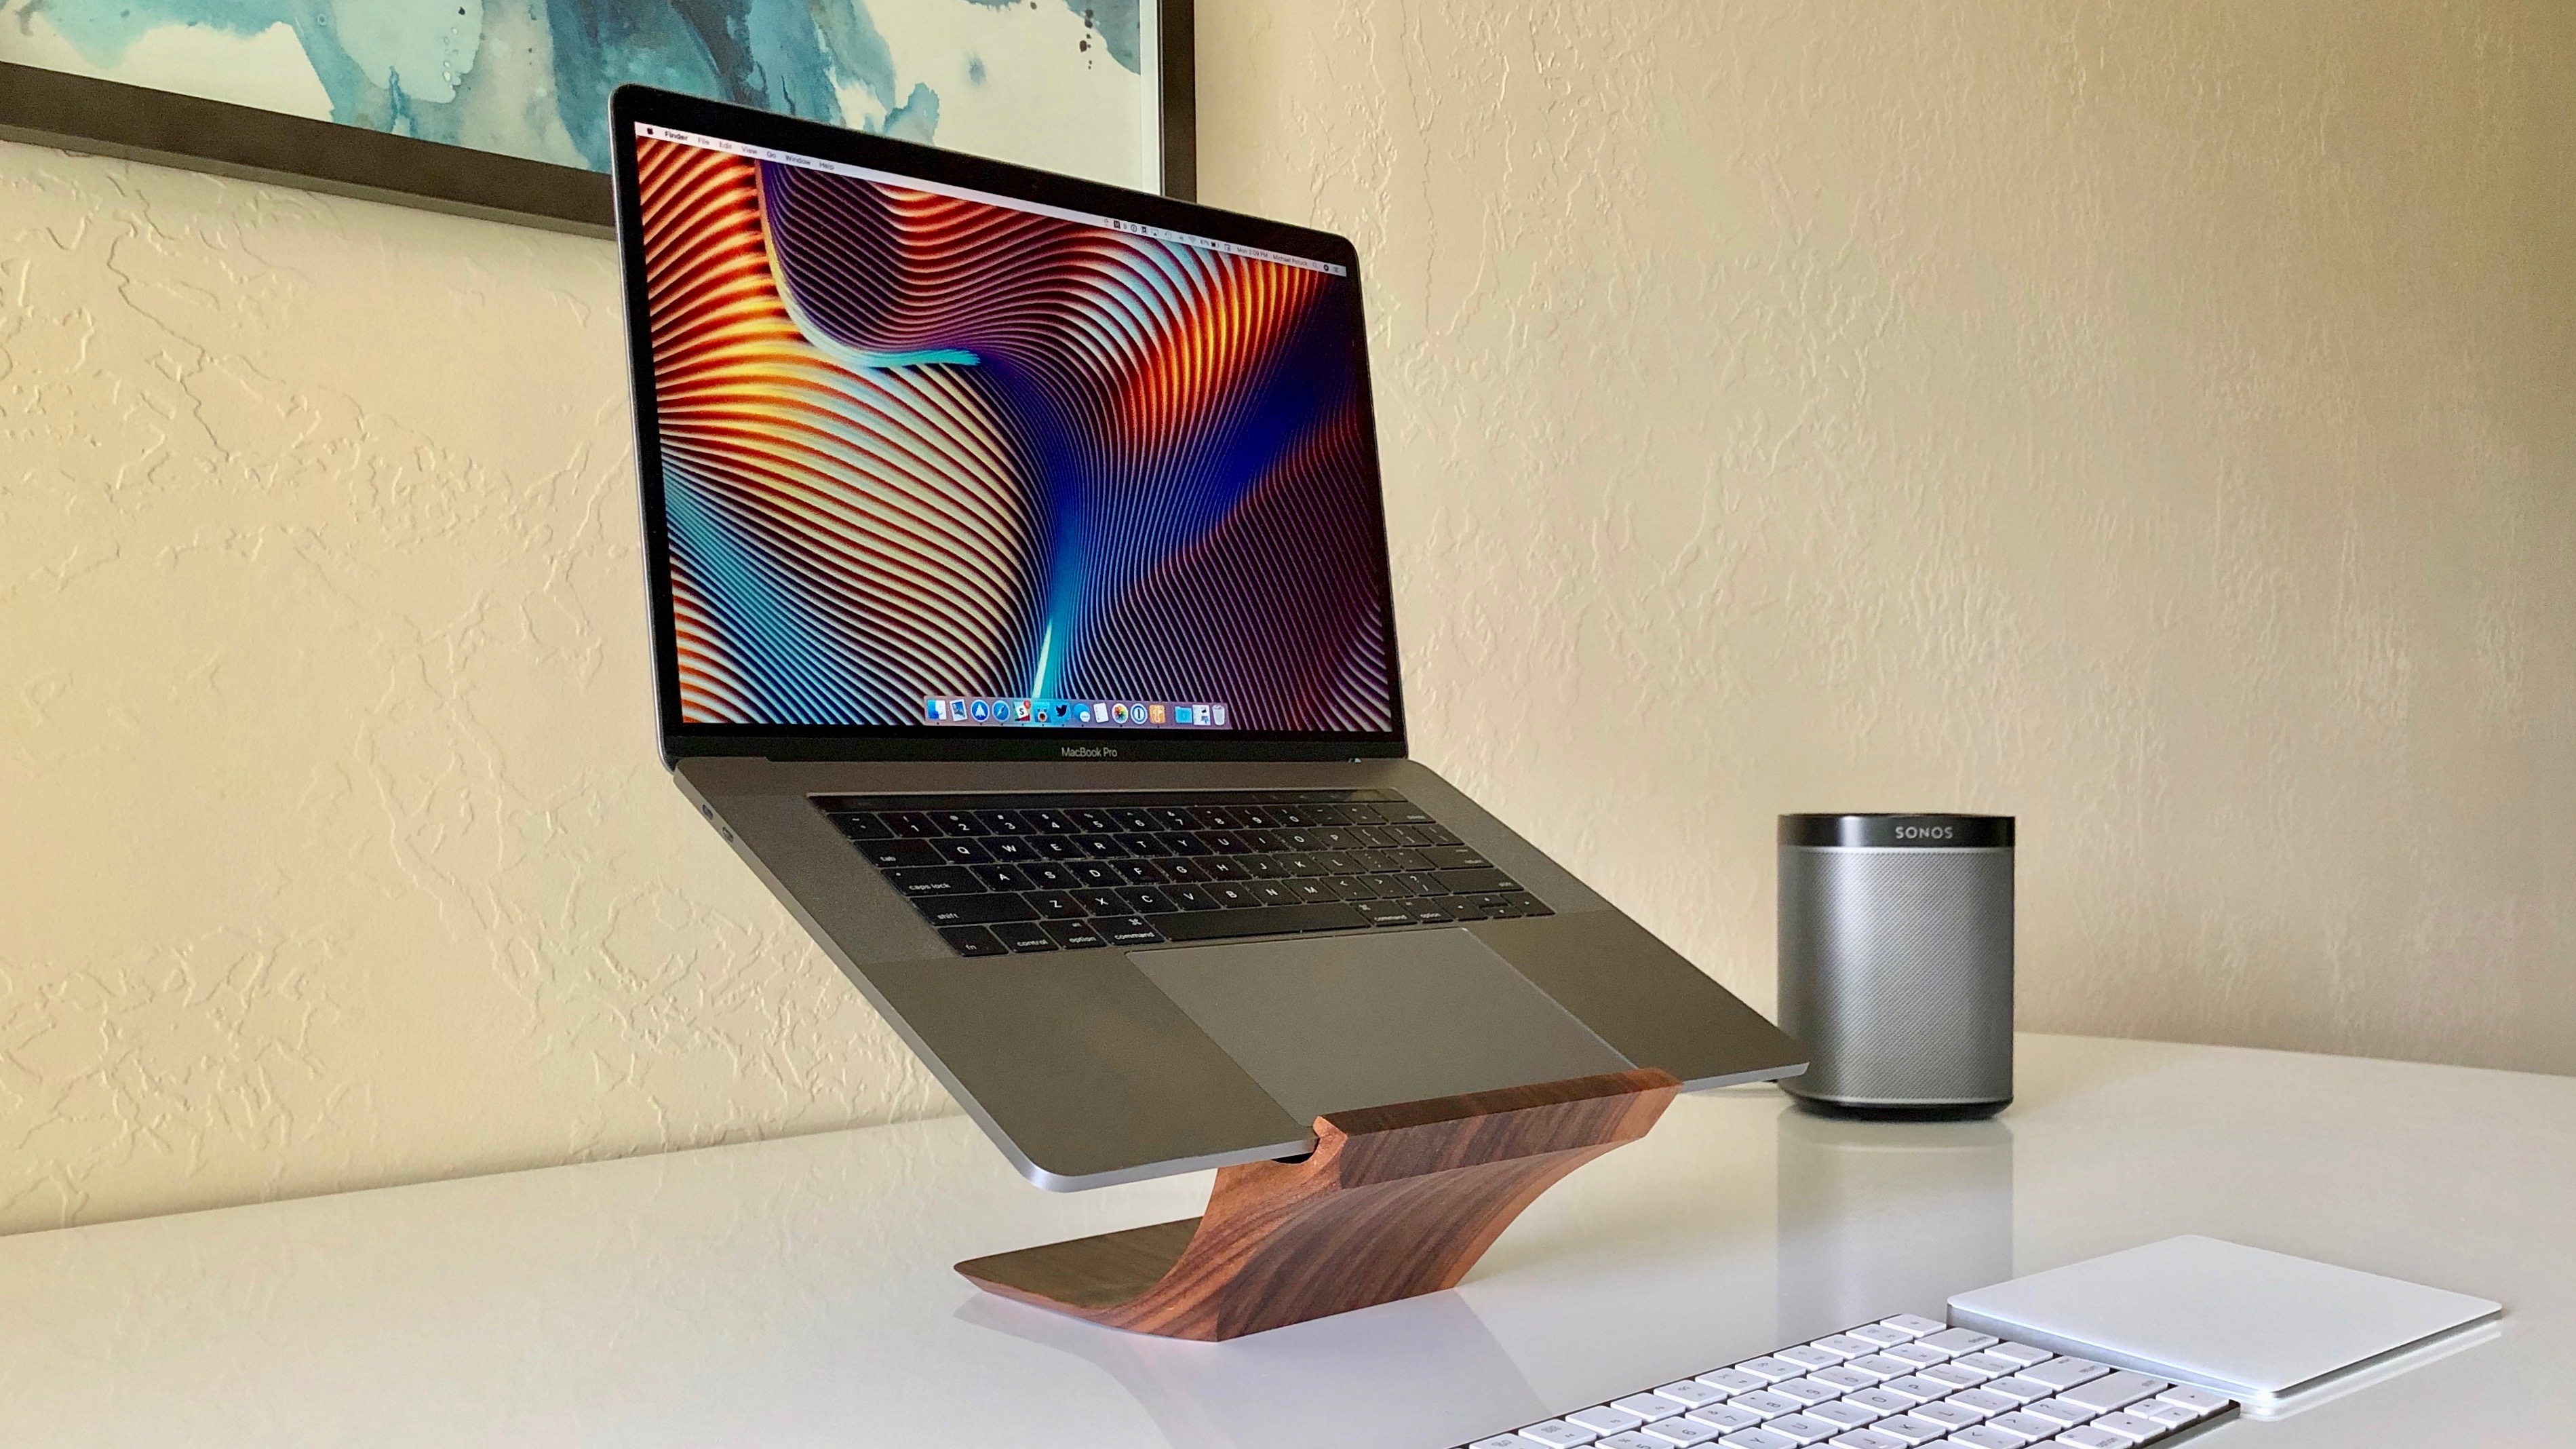 review yohann s macbook pro and macbook stand is a beautiful addition to your setup